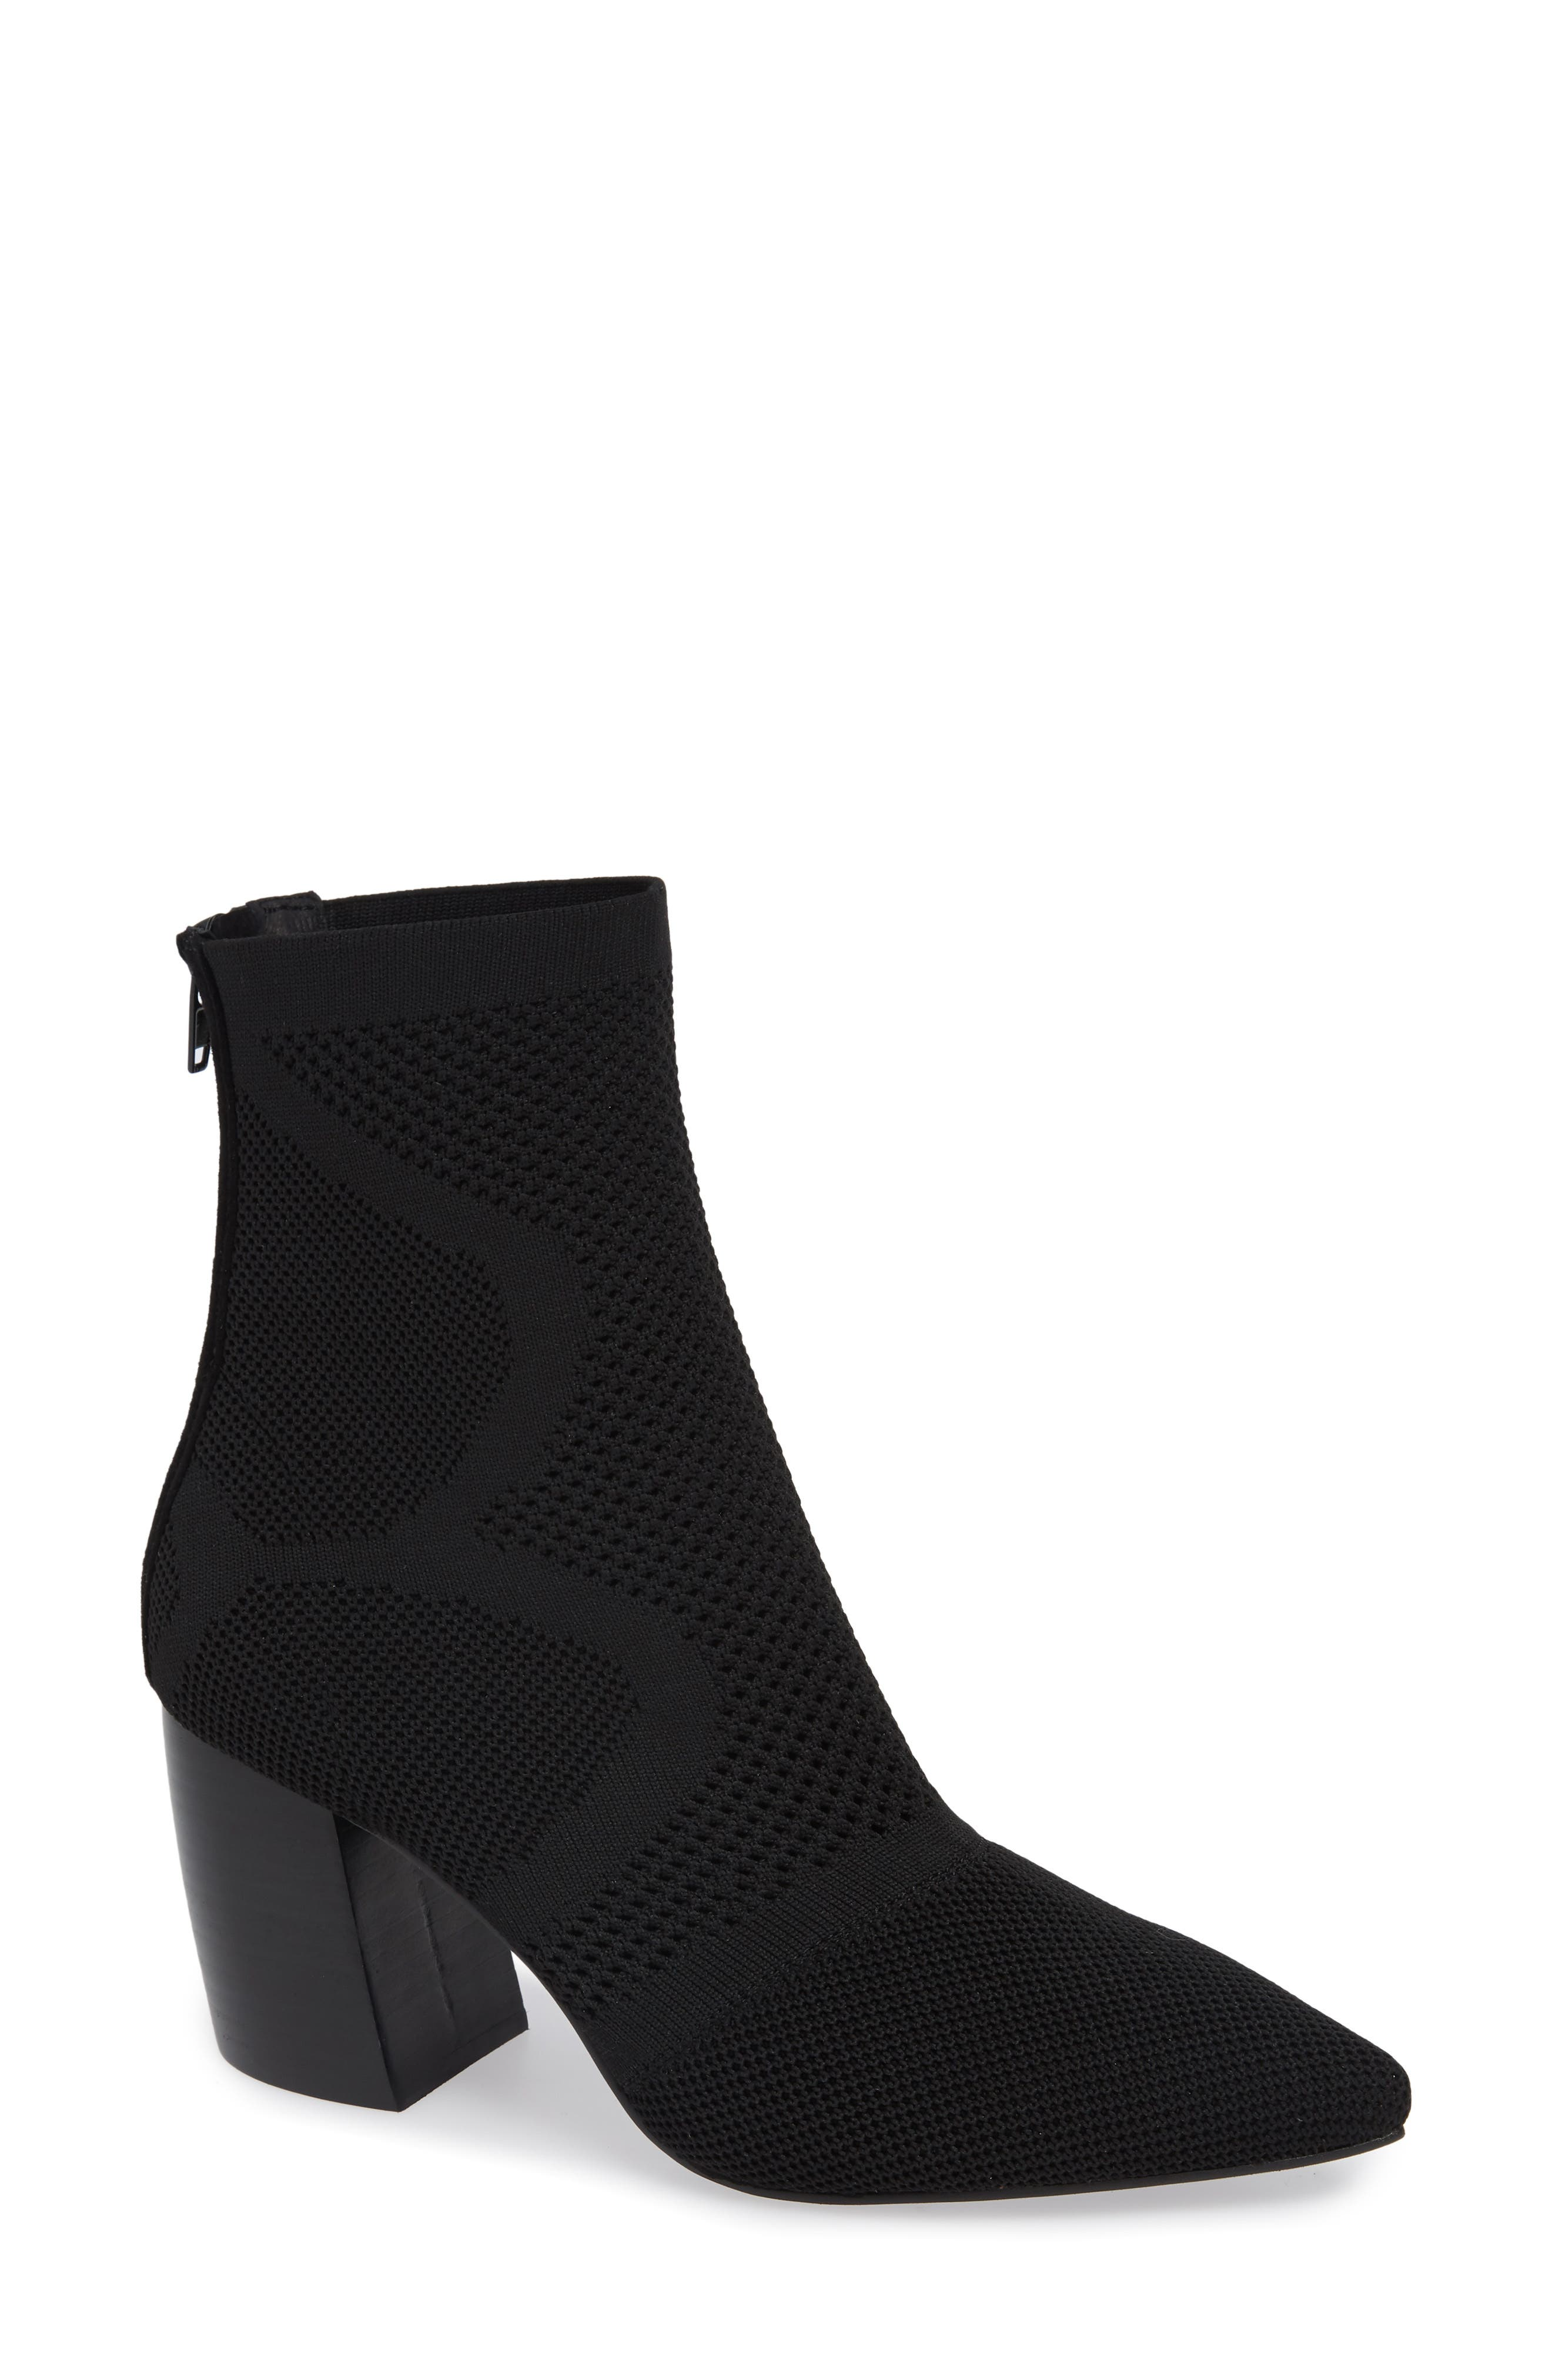 Mujer Jeffrey Campbell  Boots, Botas for Mujer  Campbell Nordstrom 679ebd